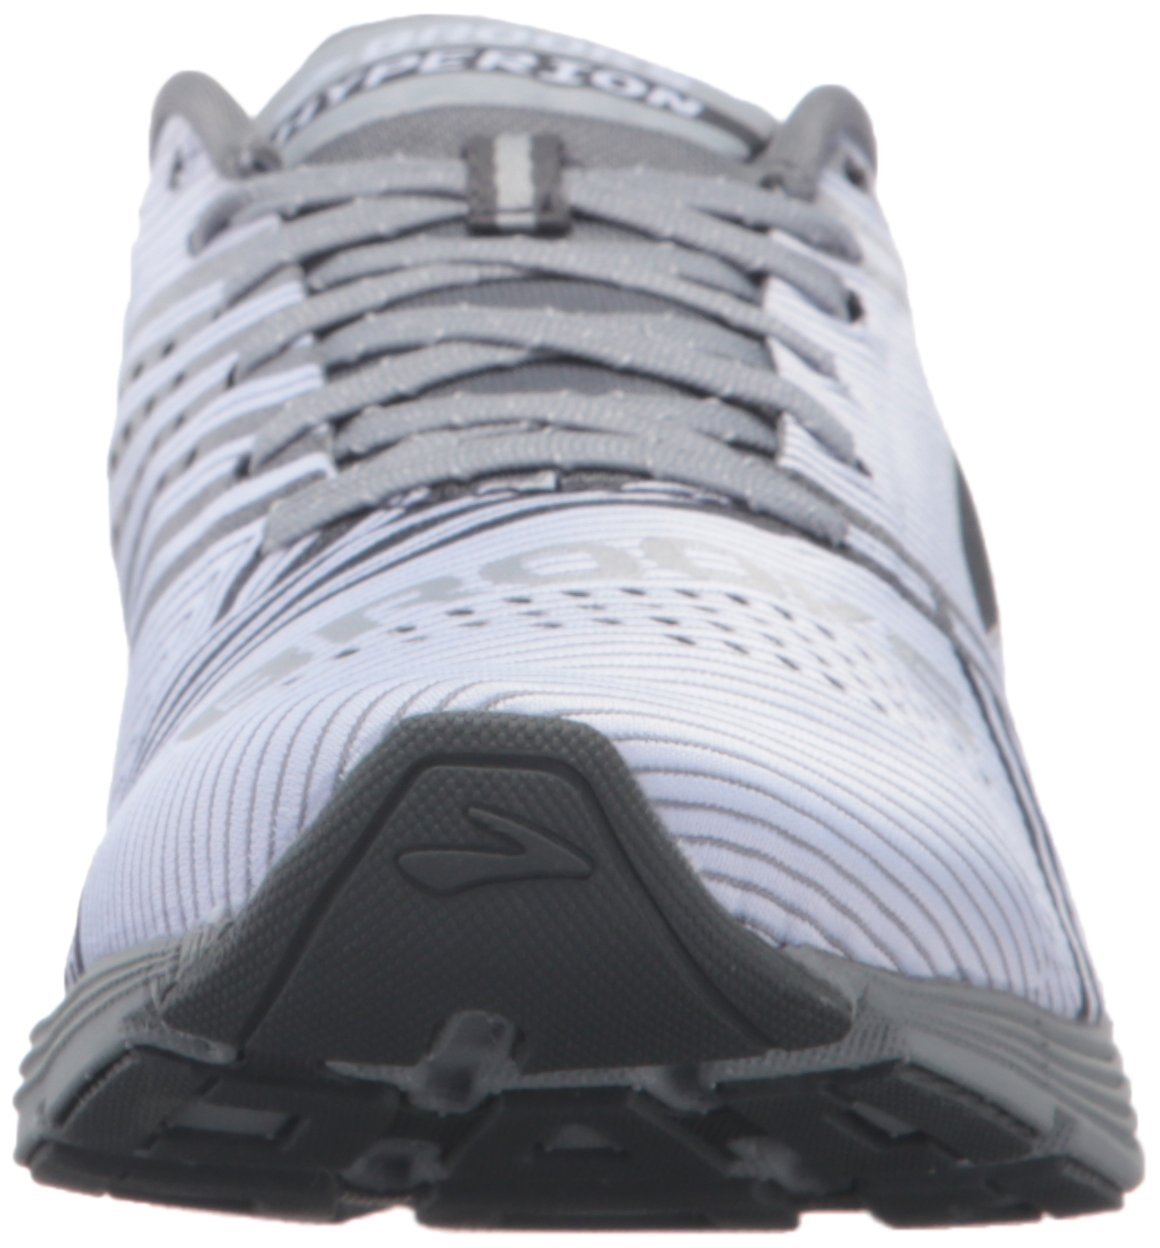 Brooks Womens Hyperion B01A9NG6HS 9 B(M) US|White/Primer Grey/River Rock